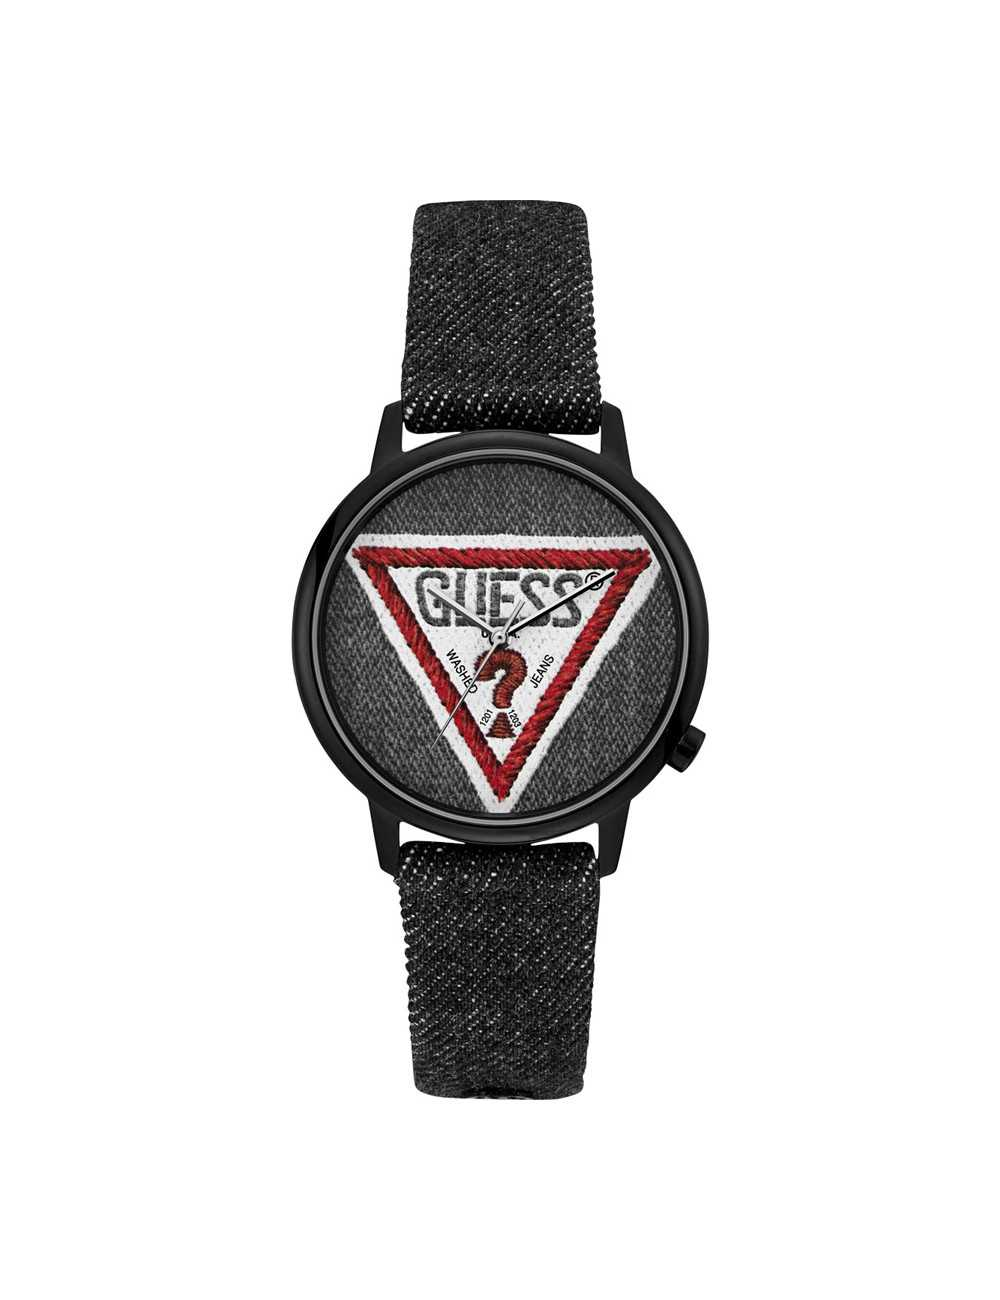 Guess Wilshire & Grand V1014M2 Ladies Watch